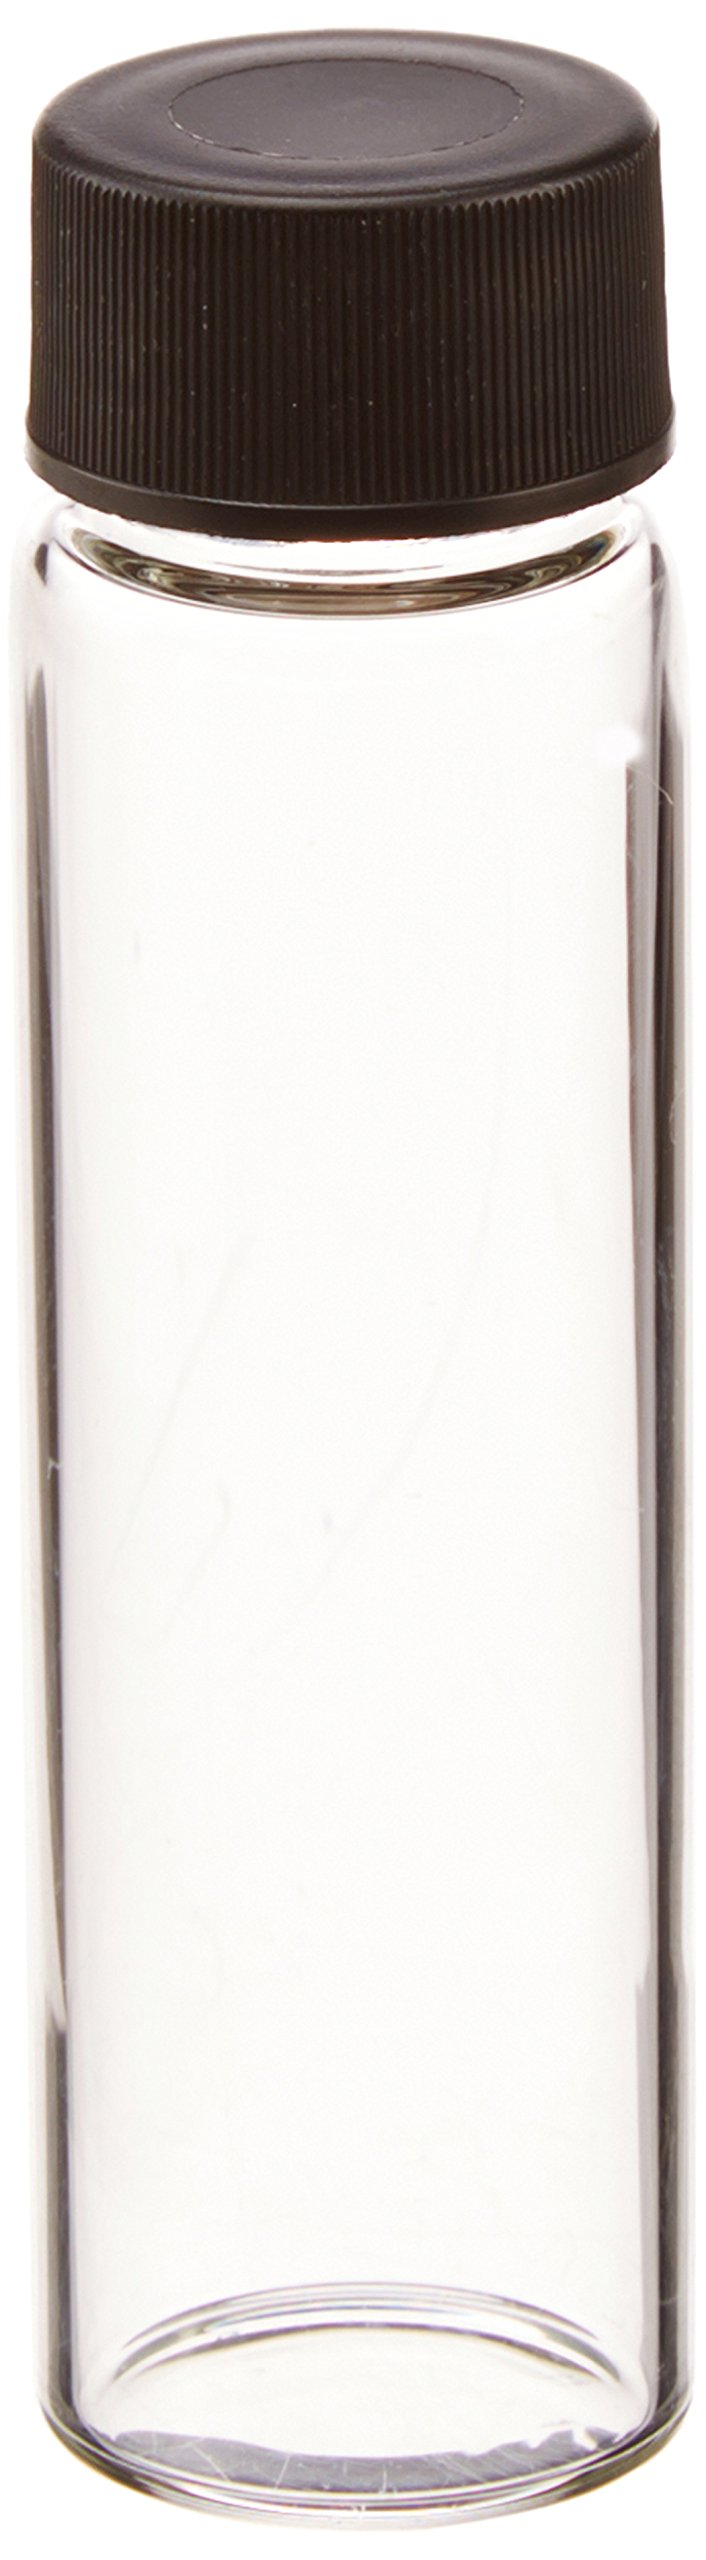 JG Finneran 812020-1965 Borosilicate Glass Dram Sample Vial with Solid Top Cap and PTFE/F217 Septa, Clear, 3 Dram Capacity, 19mm Diameter x 65mm Height (Case of 100) by JG Finneran